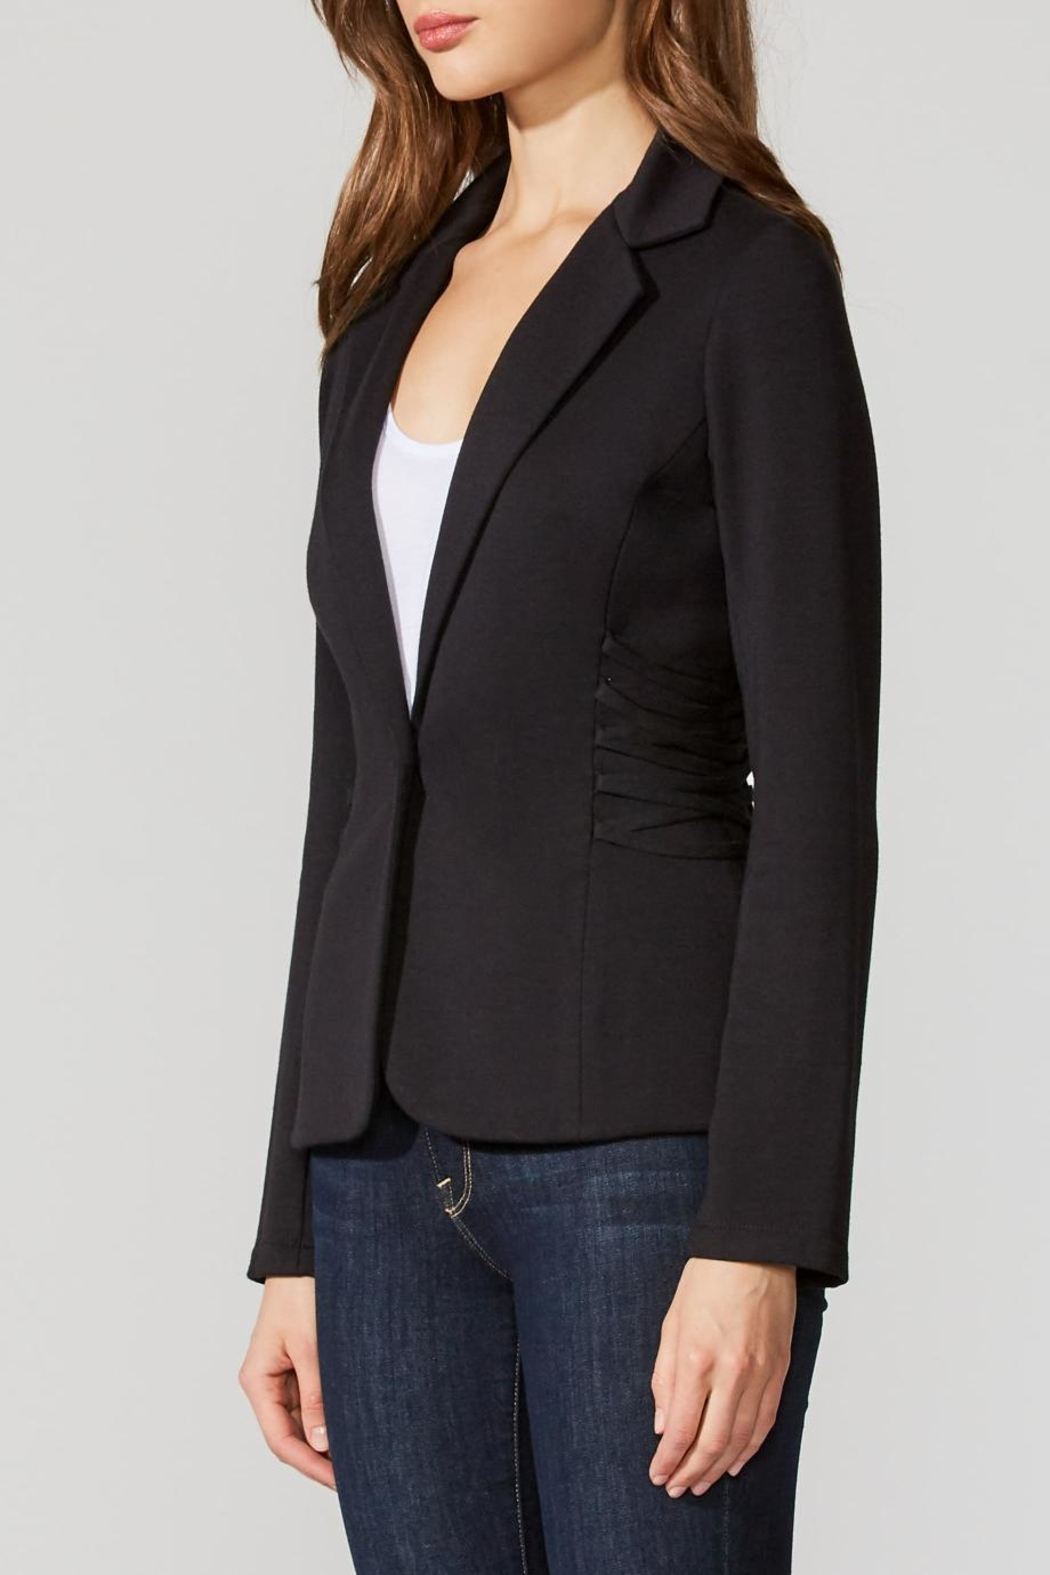 Bailey 44 Fleece Fitted Blazer - Front Full Image